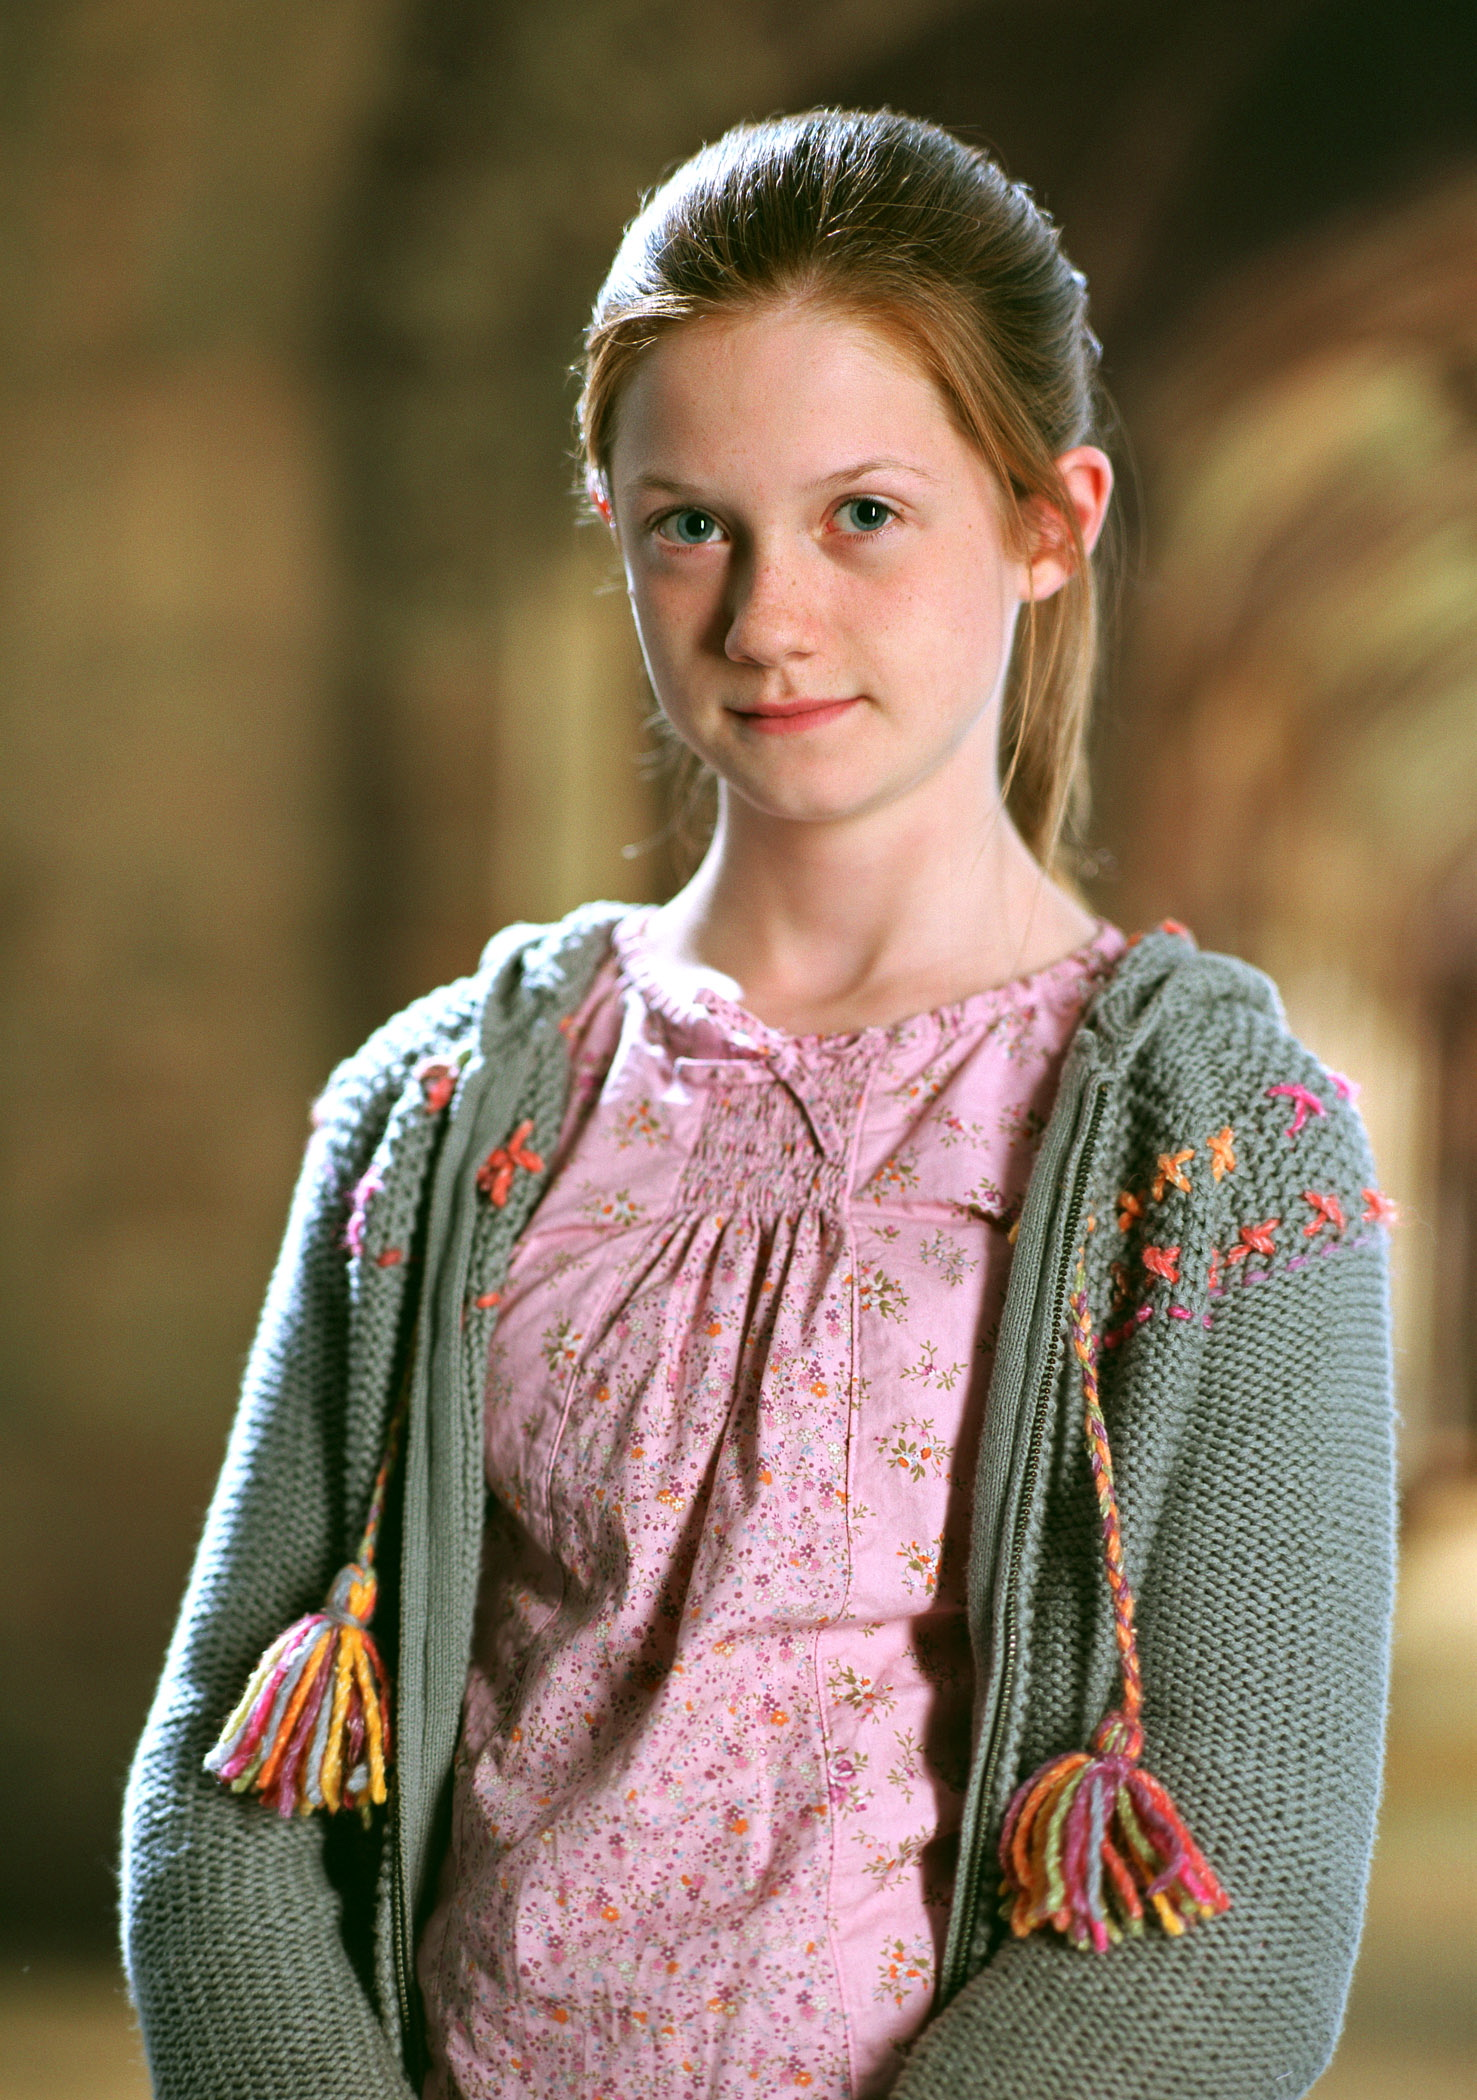 Ginny of Harry Potter vs. Harry Potter's Ginny | The Daily ...